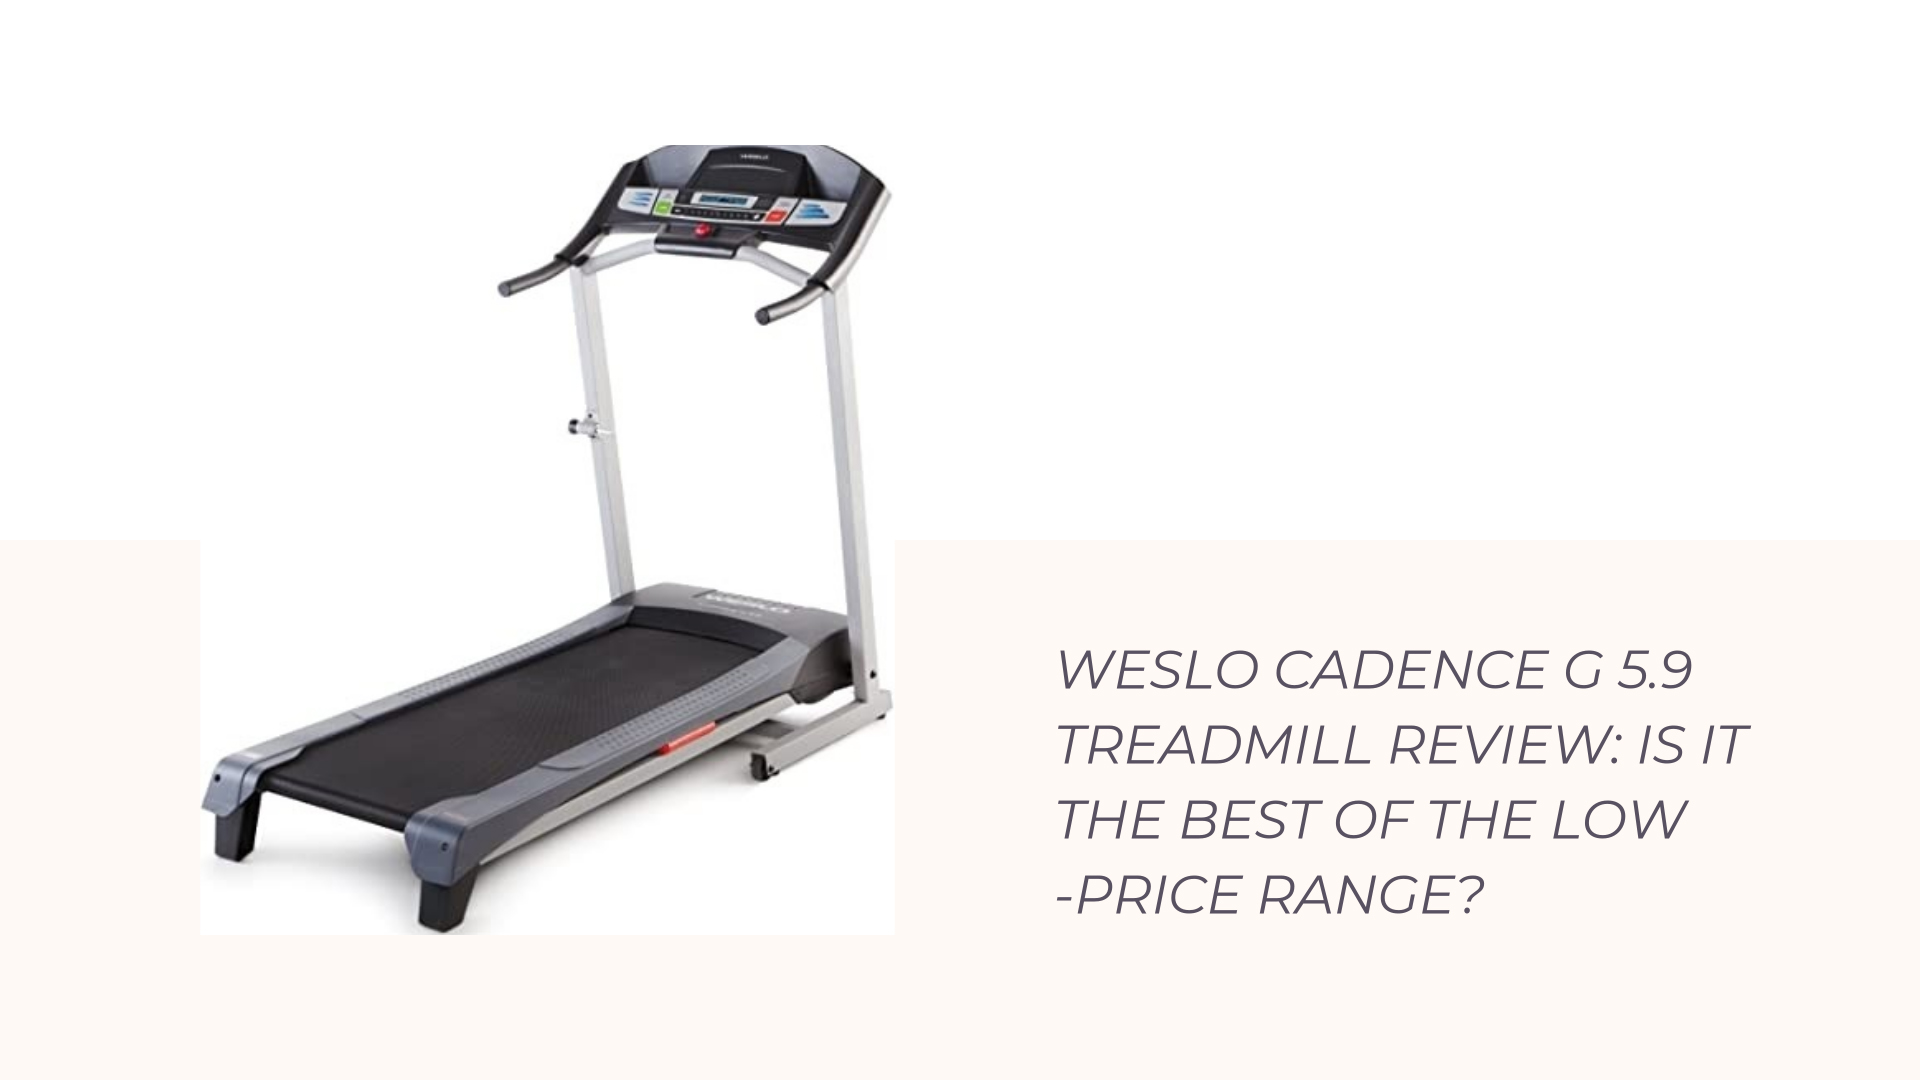 Weslo Cadence G 5.9 Treadmill Review Is It the Best of the Low-Price Range